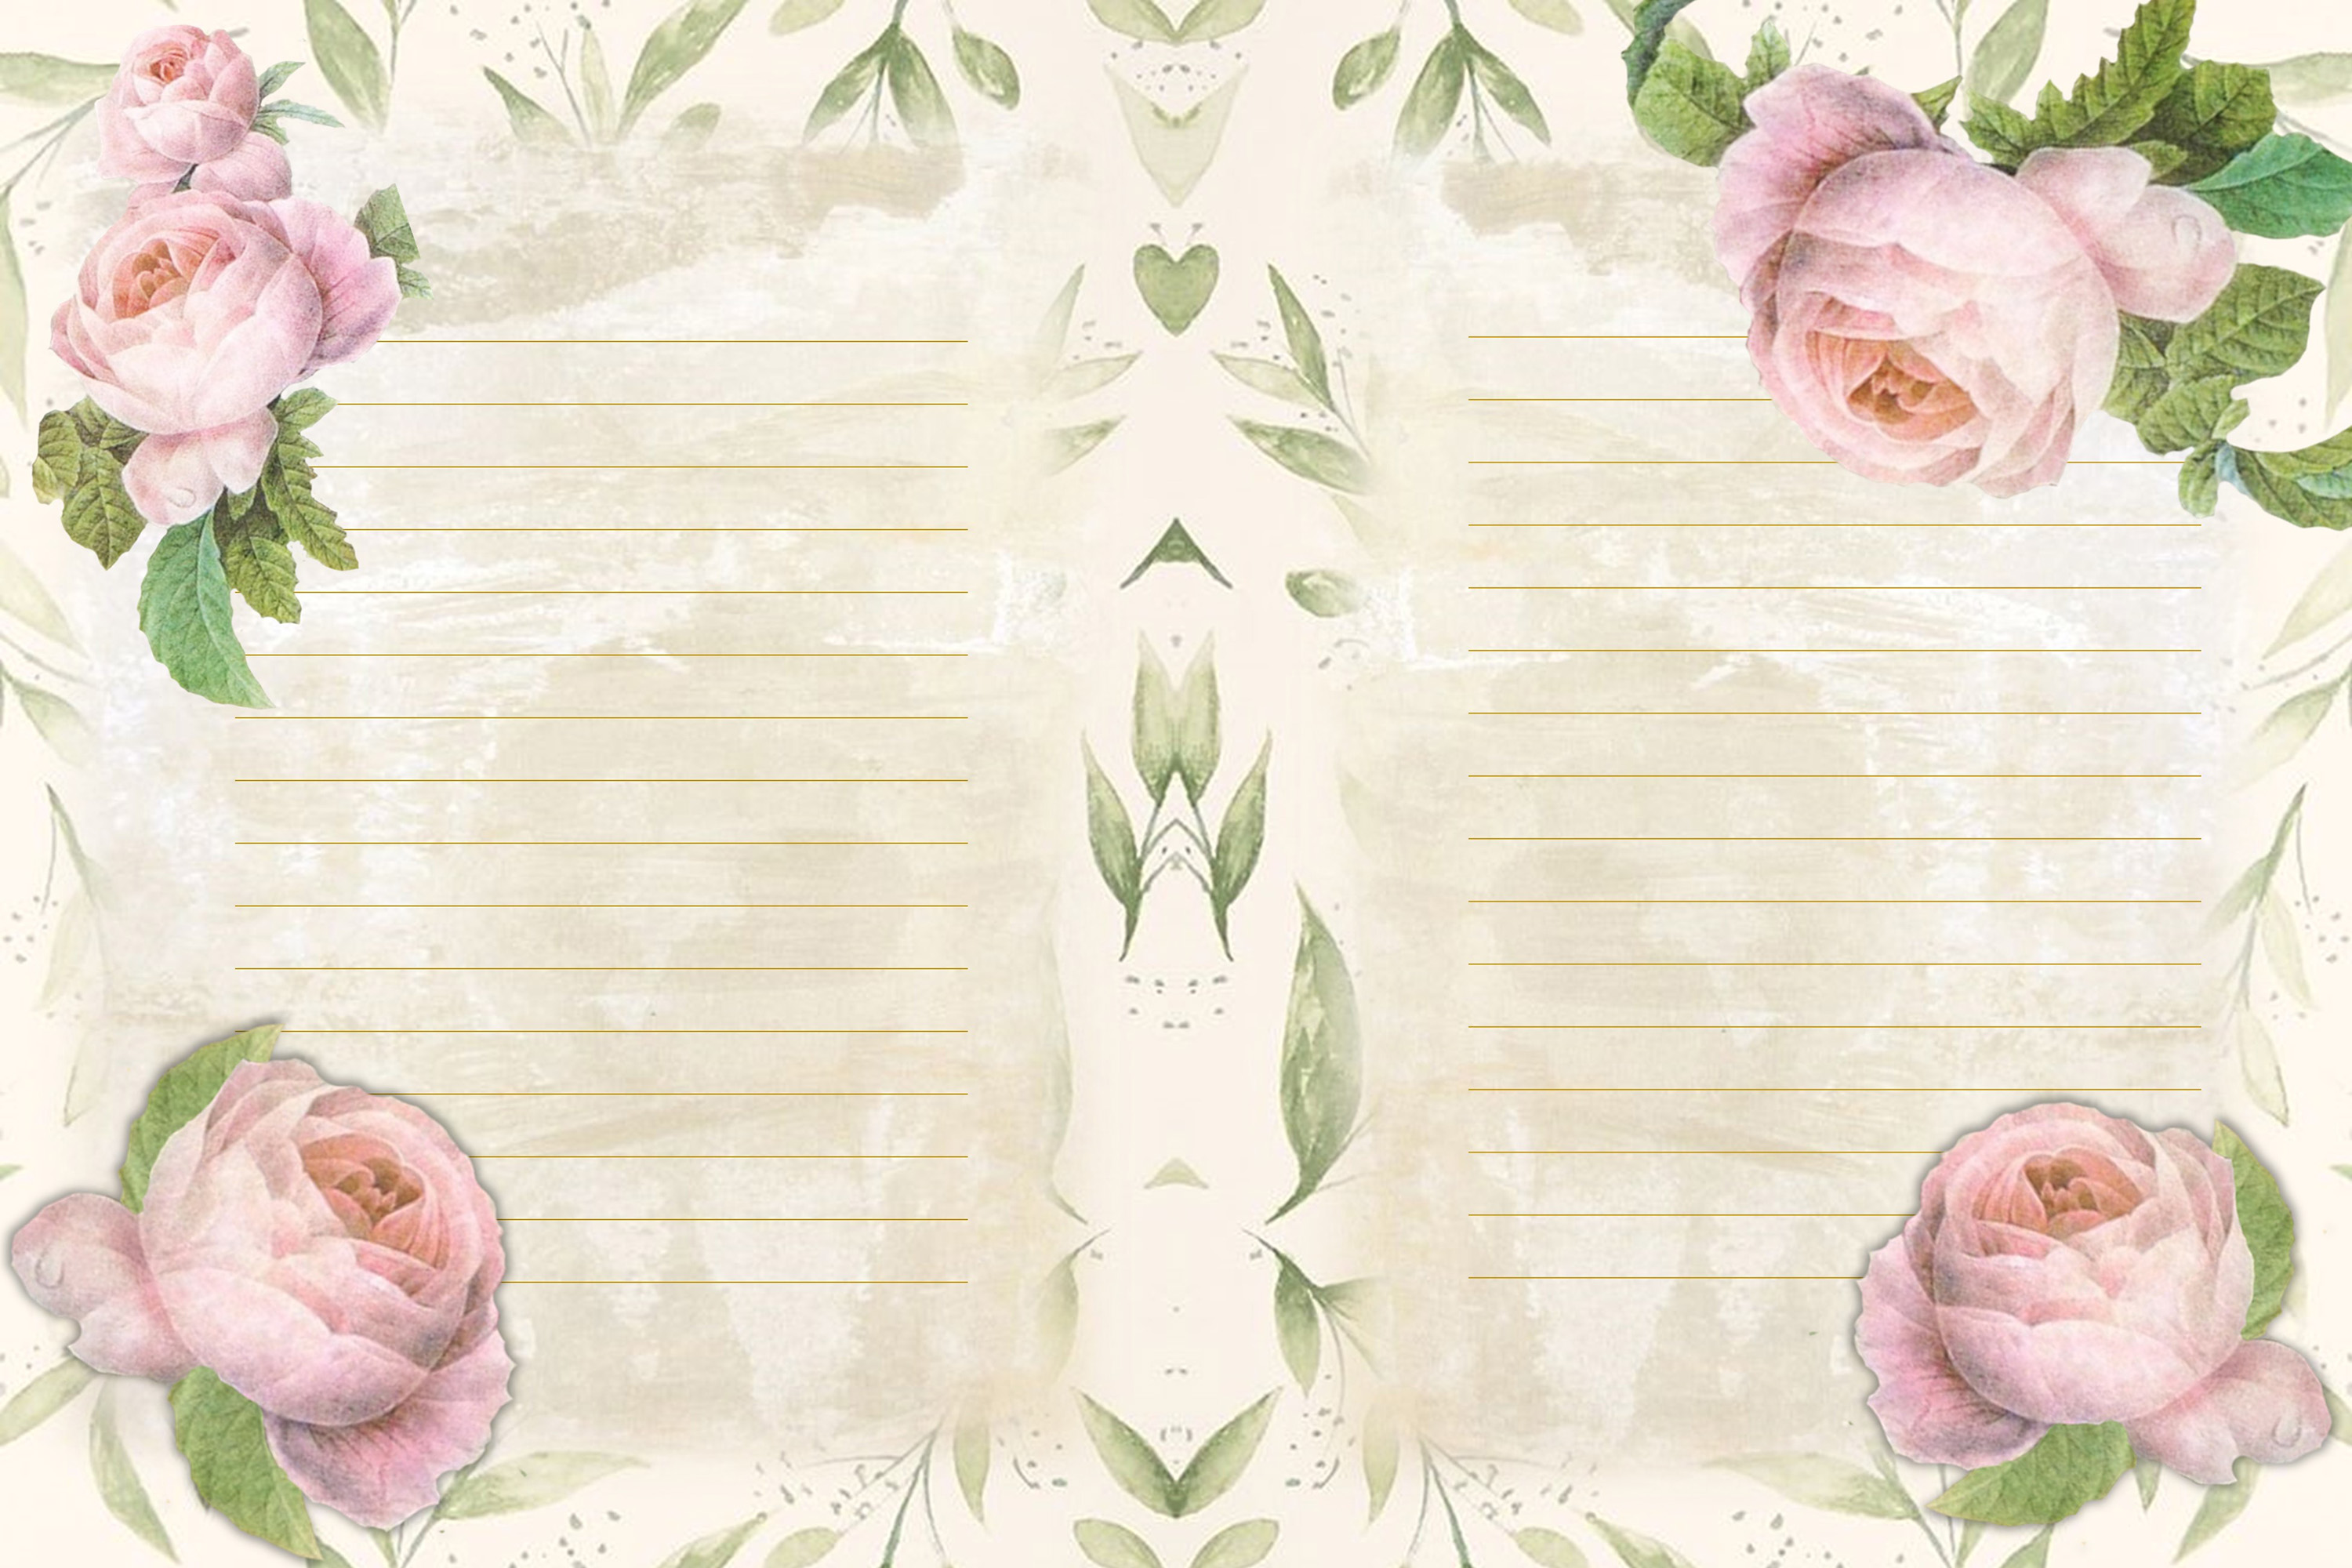 Journaling backgrounds with FREE ephemera PNG and JPEG CU example image 3